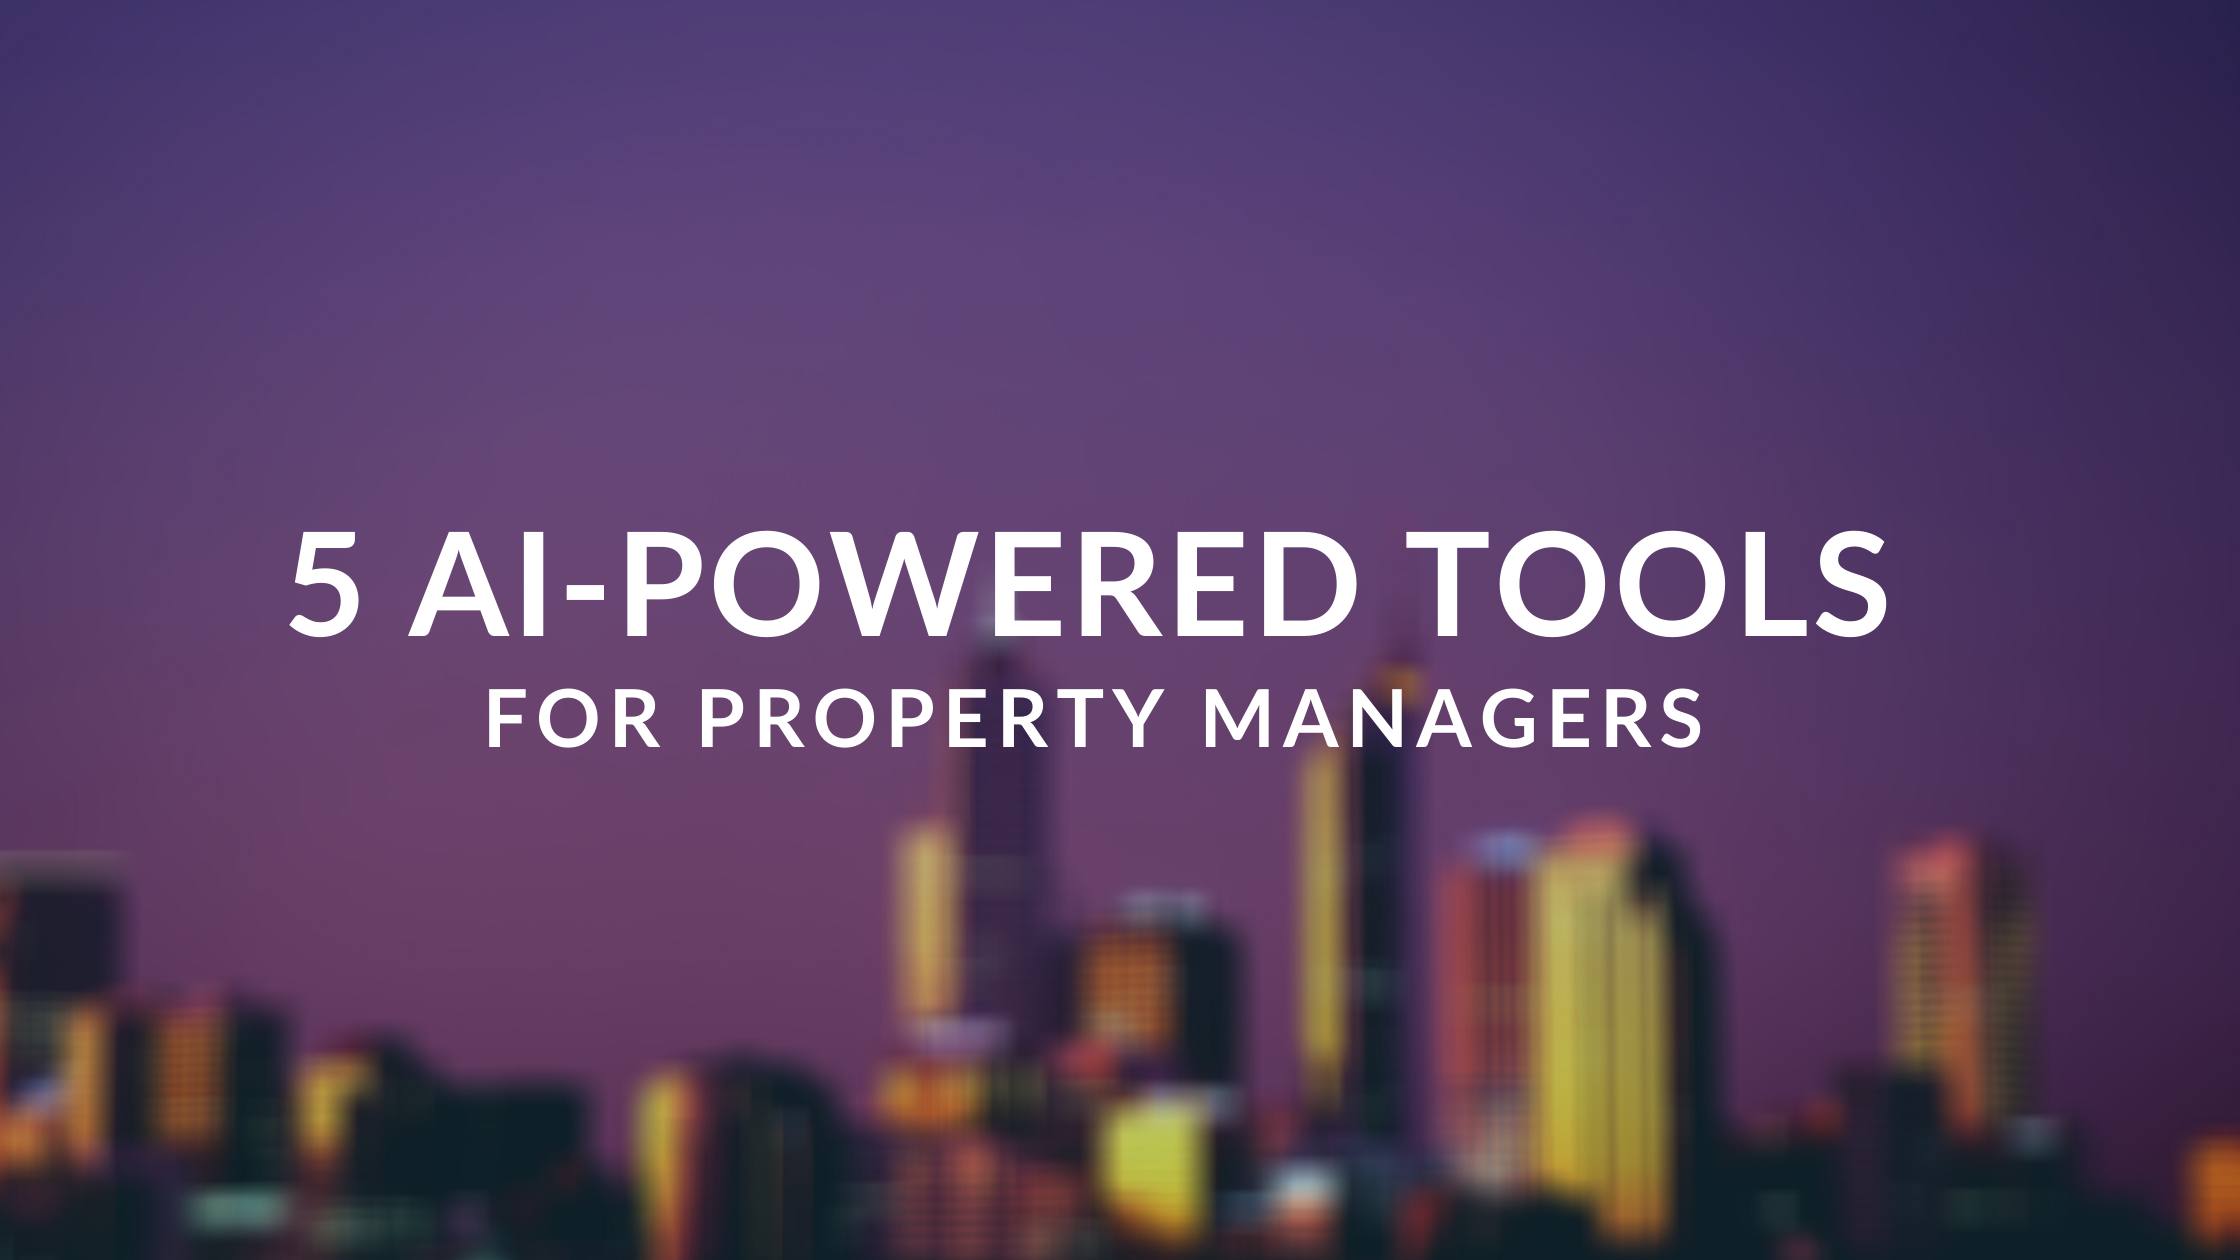 Do you know that Artificial Intelligence increases your business productivity by up to 40%? Continue reading and discover how AI-powered property management tools can increase your business' productivity.